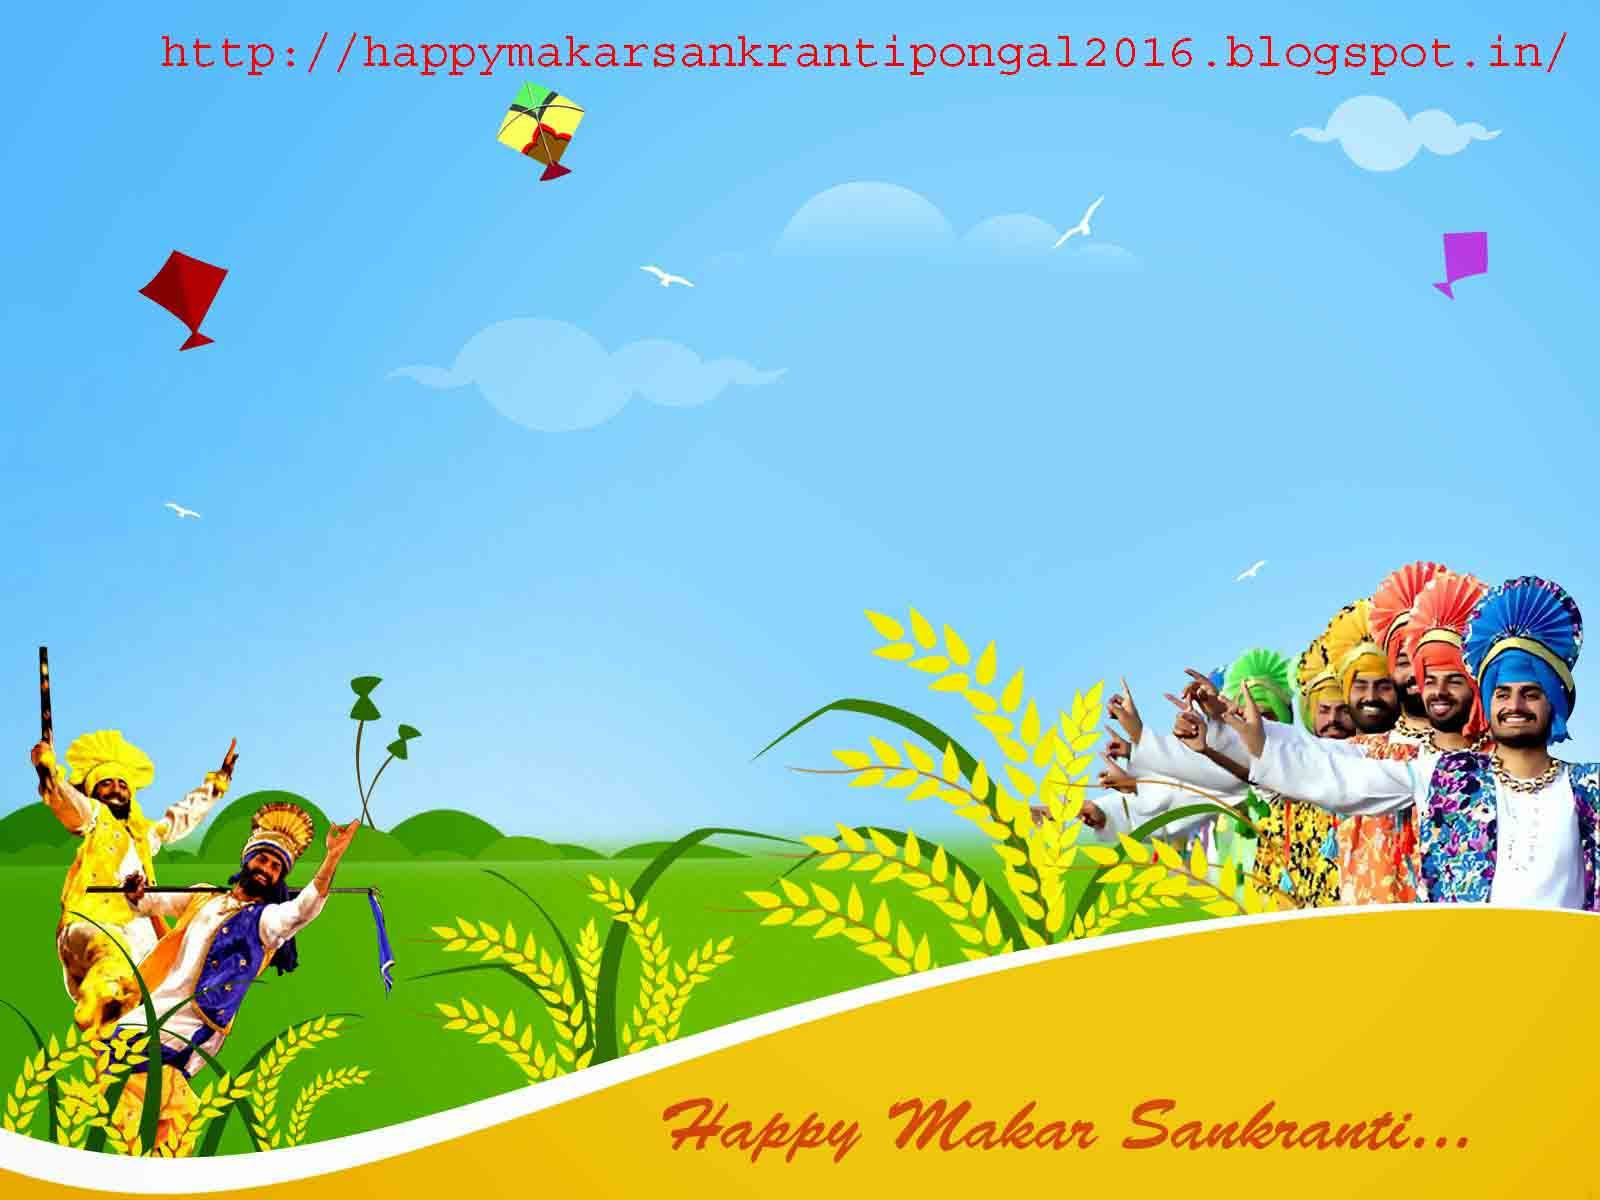 pongal festival essay images of pongal festival wishes and  best ideas about makar sankranti images 17 best ideas about makar sankranti 2016 images makar sankranti pongal festival essay